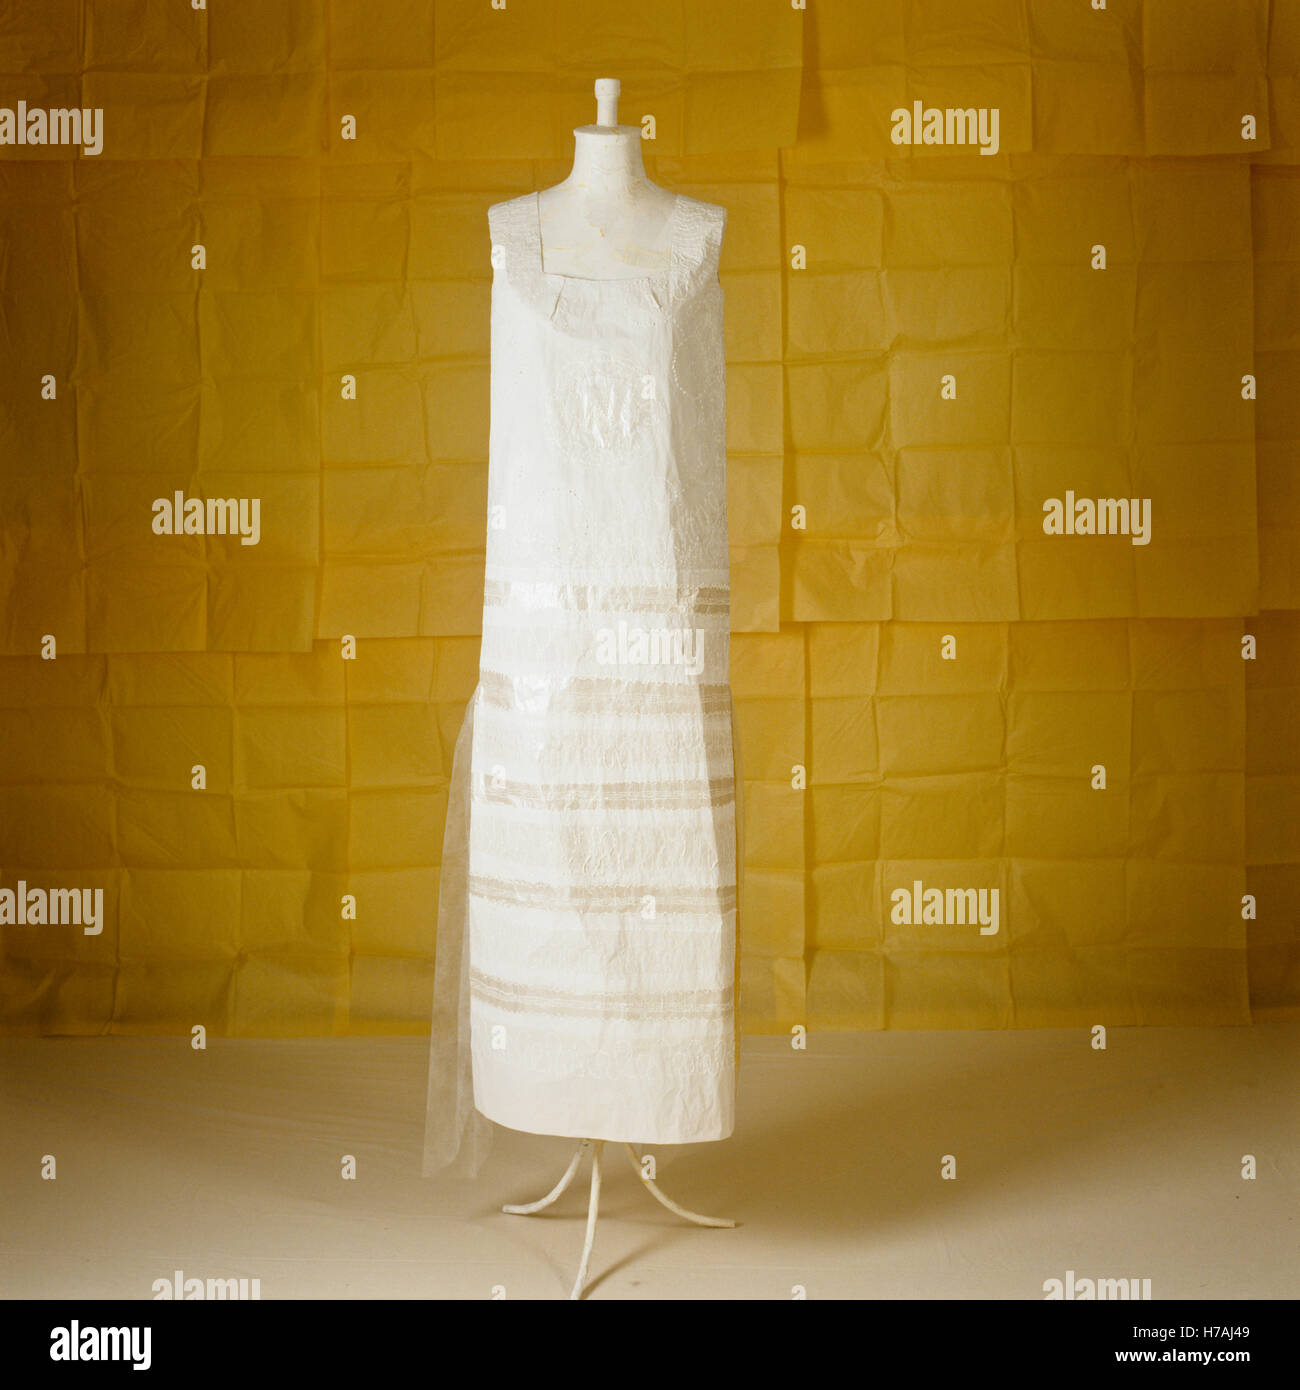 White sleeveless 1920s style historical replica paper dress by Isabelle de Borchgrave - Stock Image